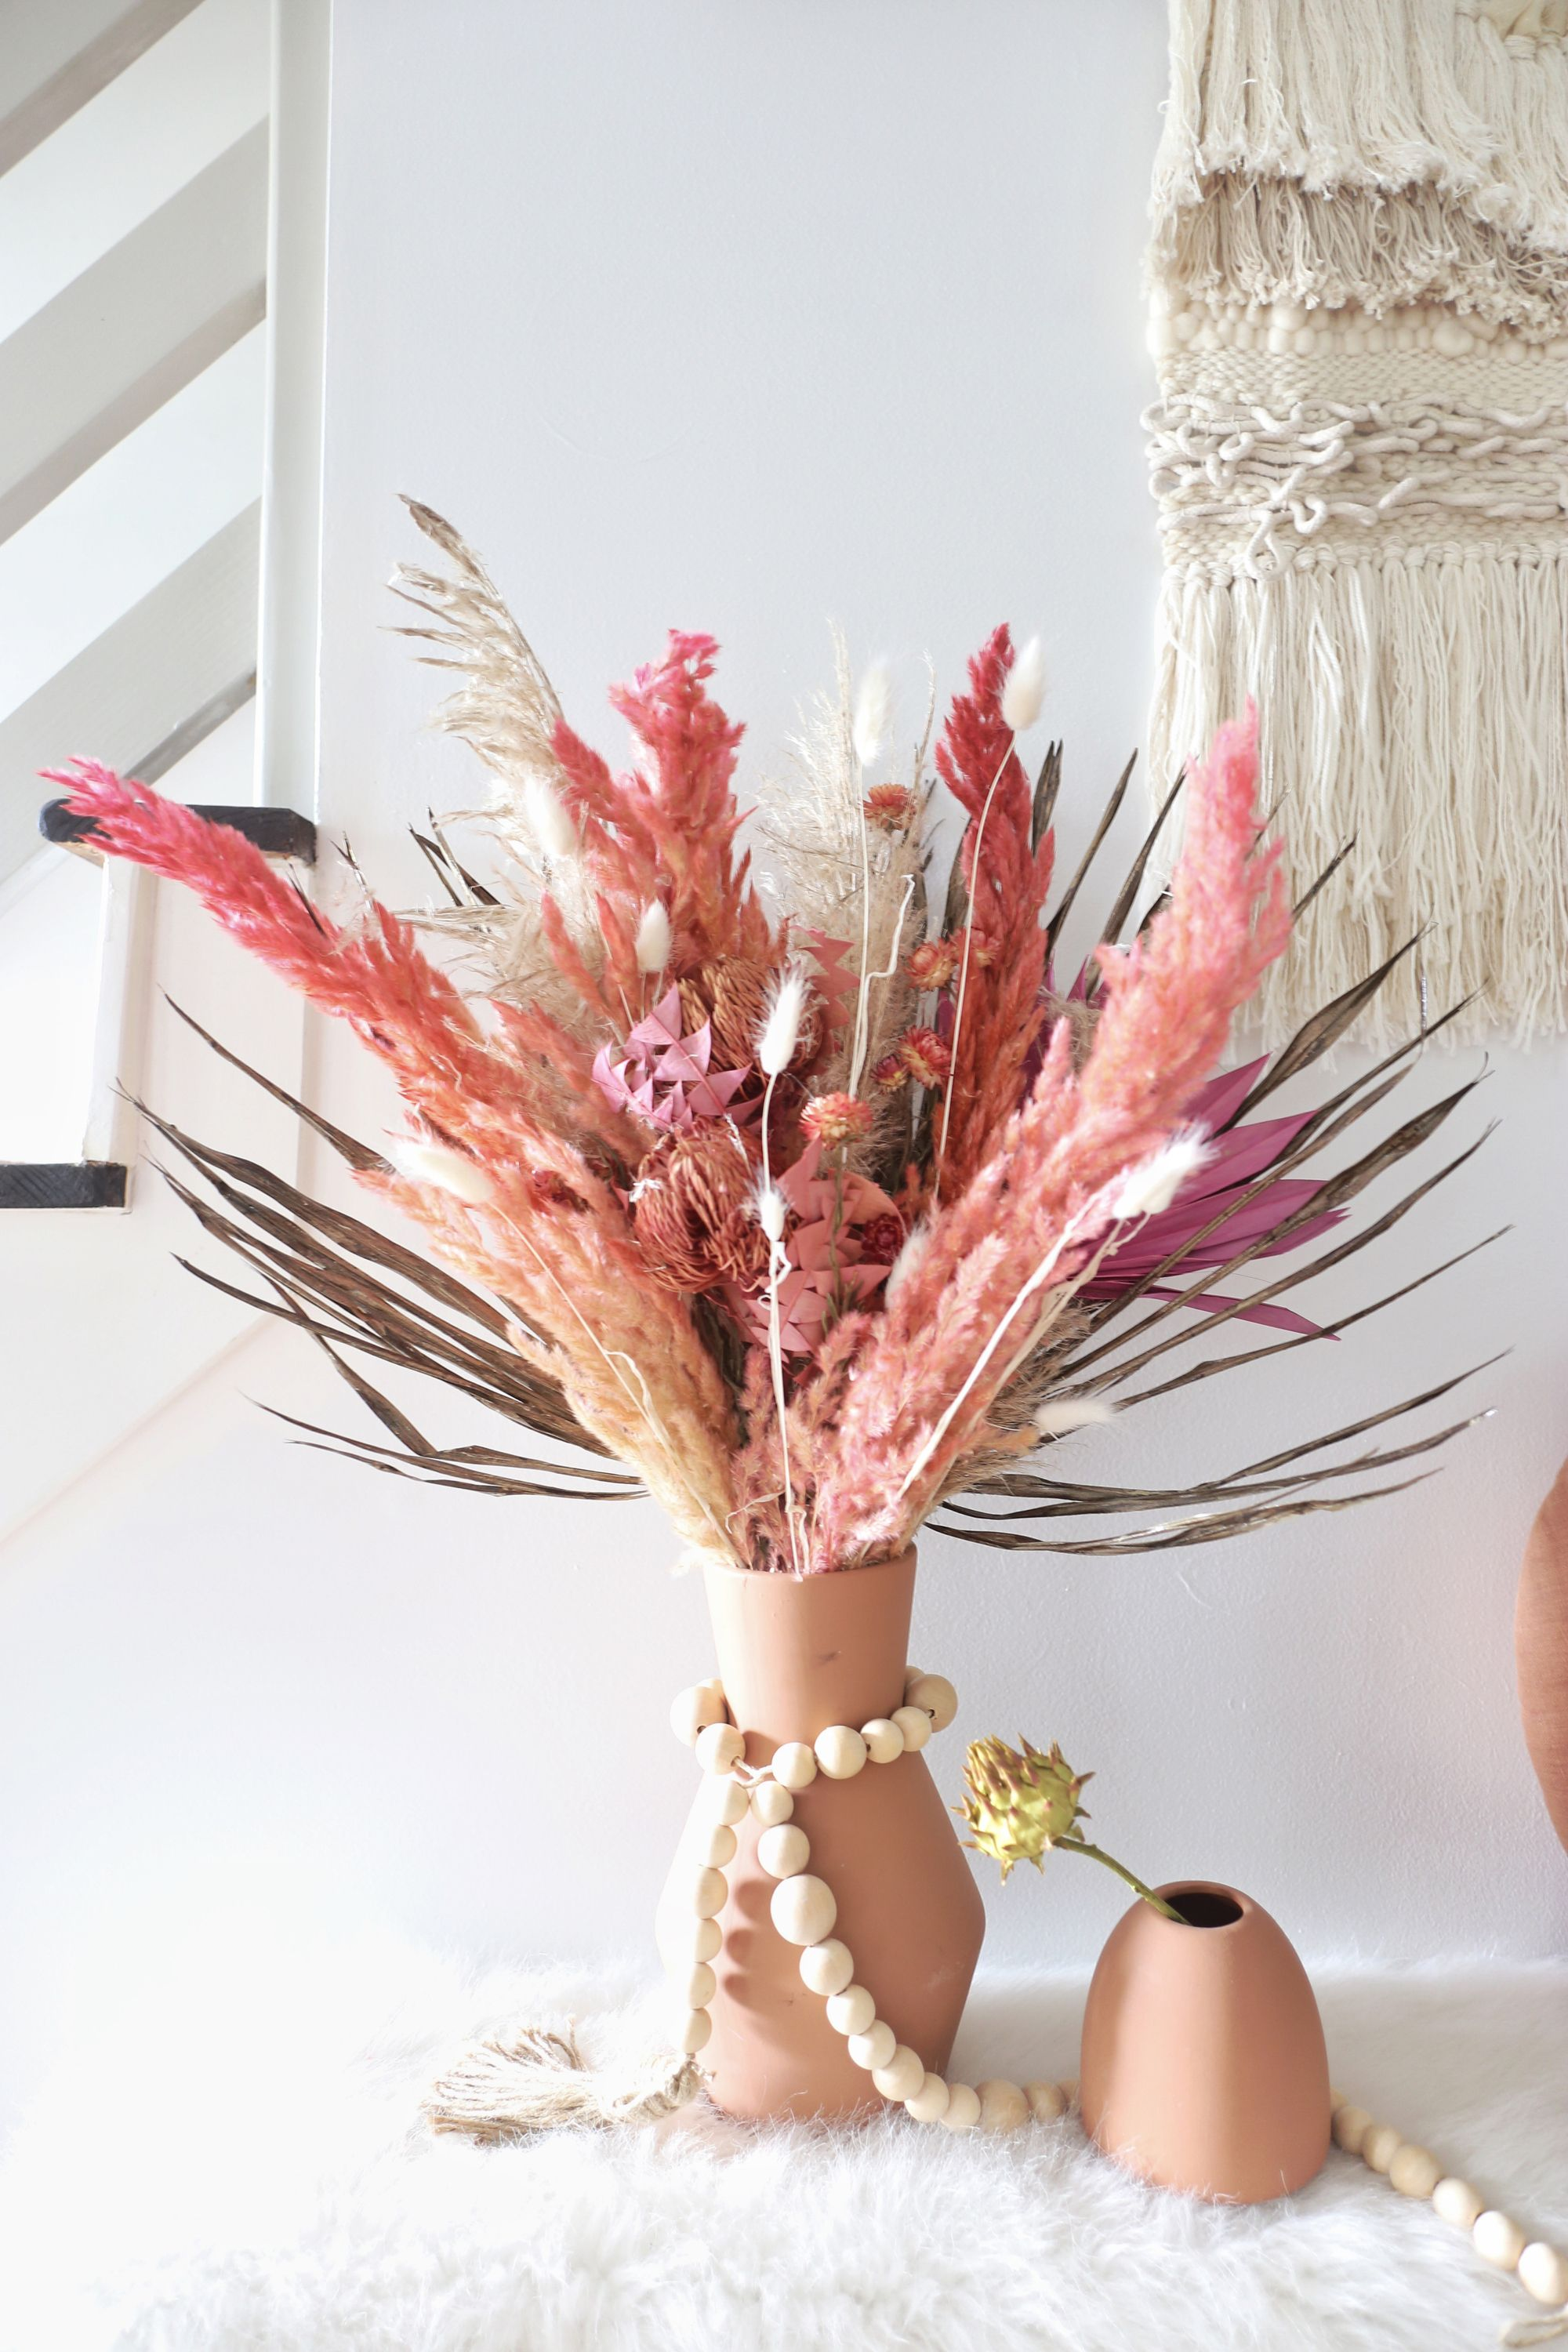 Dried Pampas Grass Arrangement For Home Decor In 2020 Dried Flower Bouquet Dried Flower Arrangements Dried Flowers